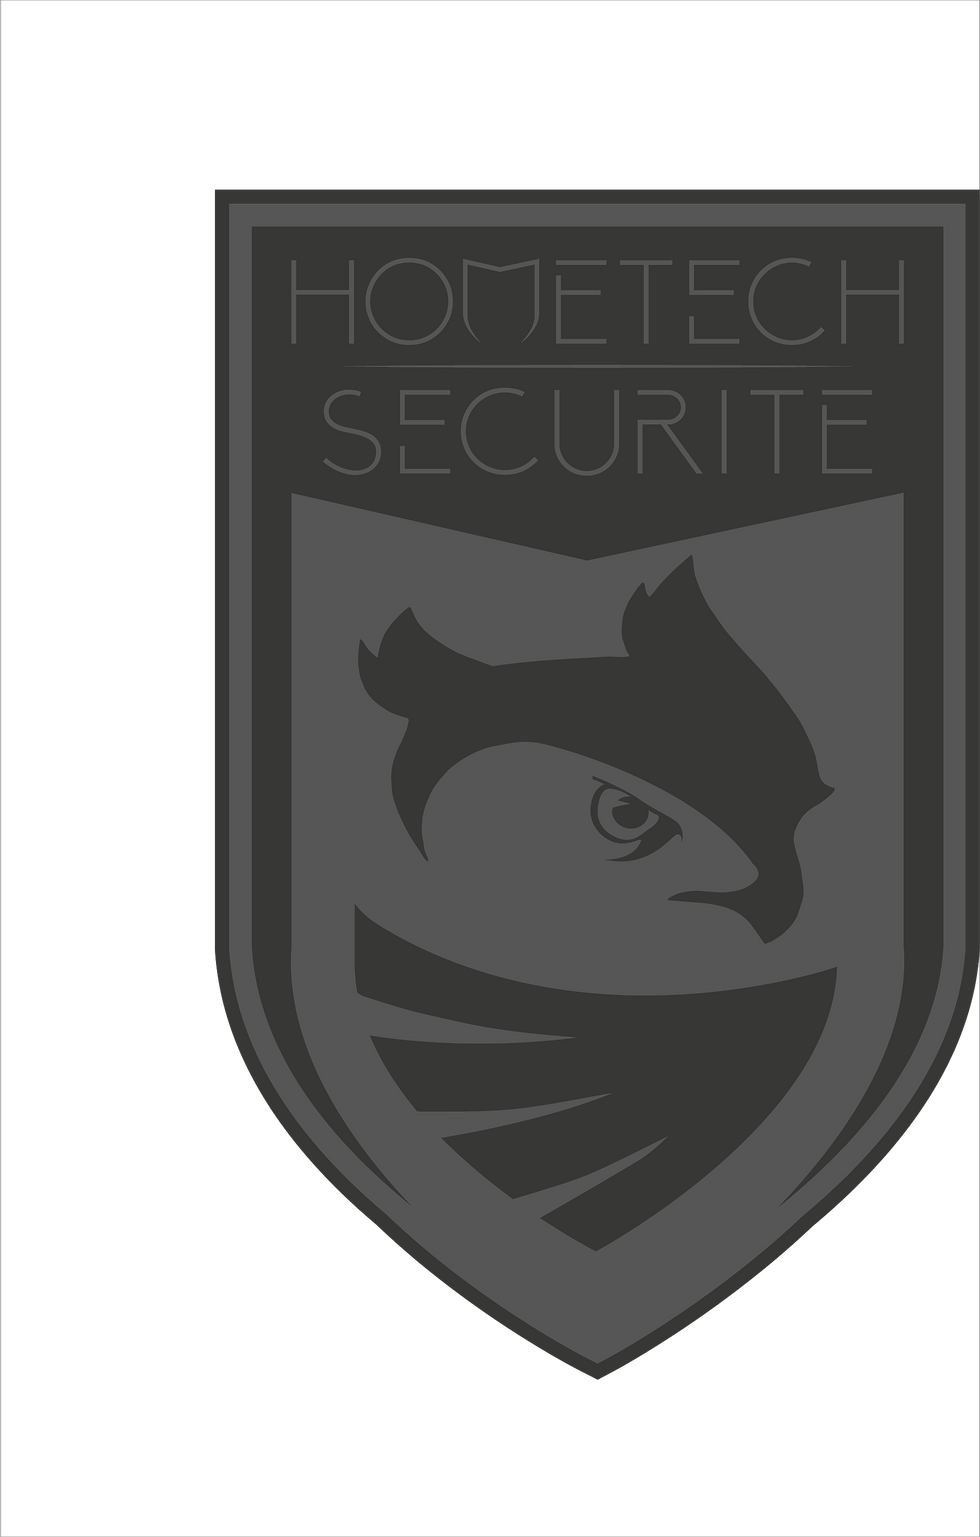 Hometech securite Logo 01-04.png